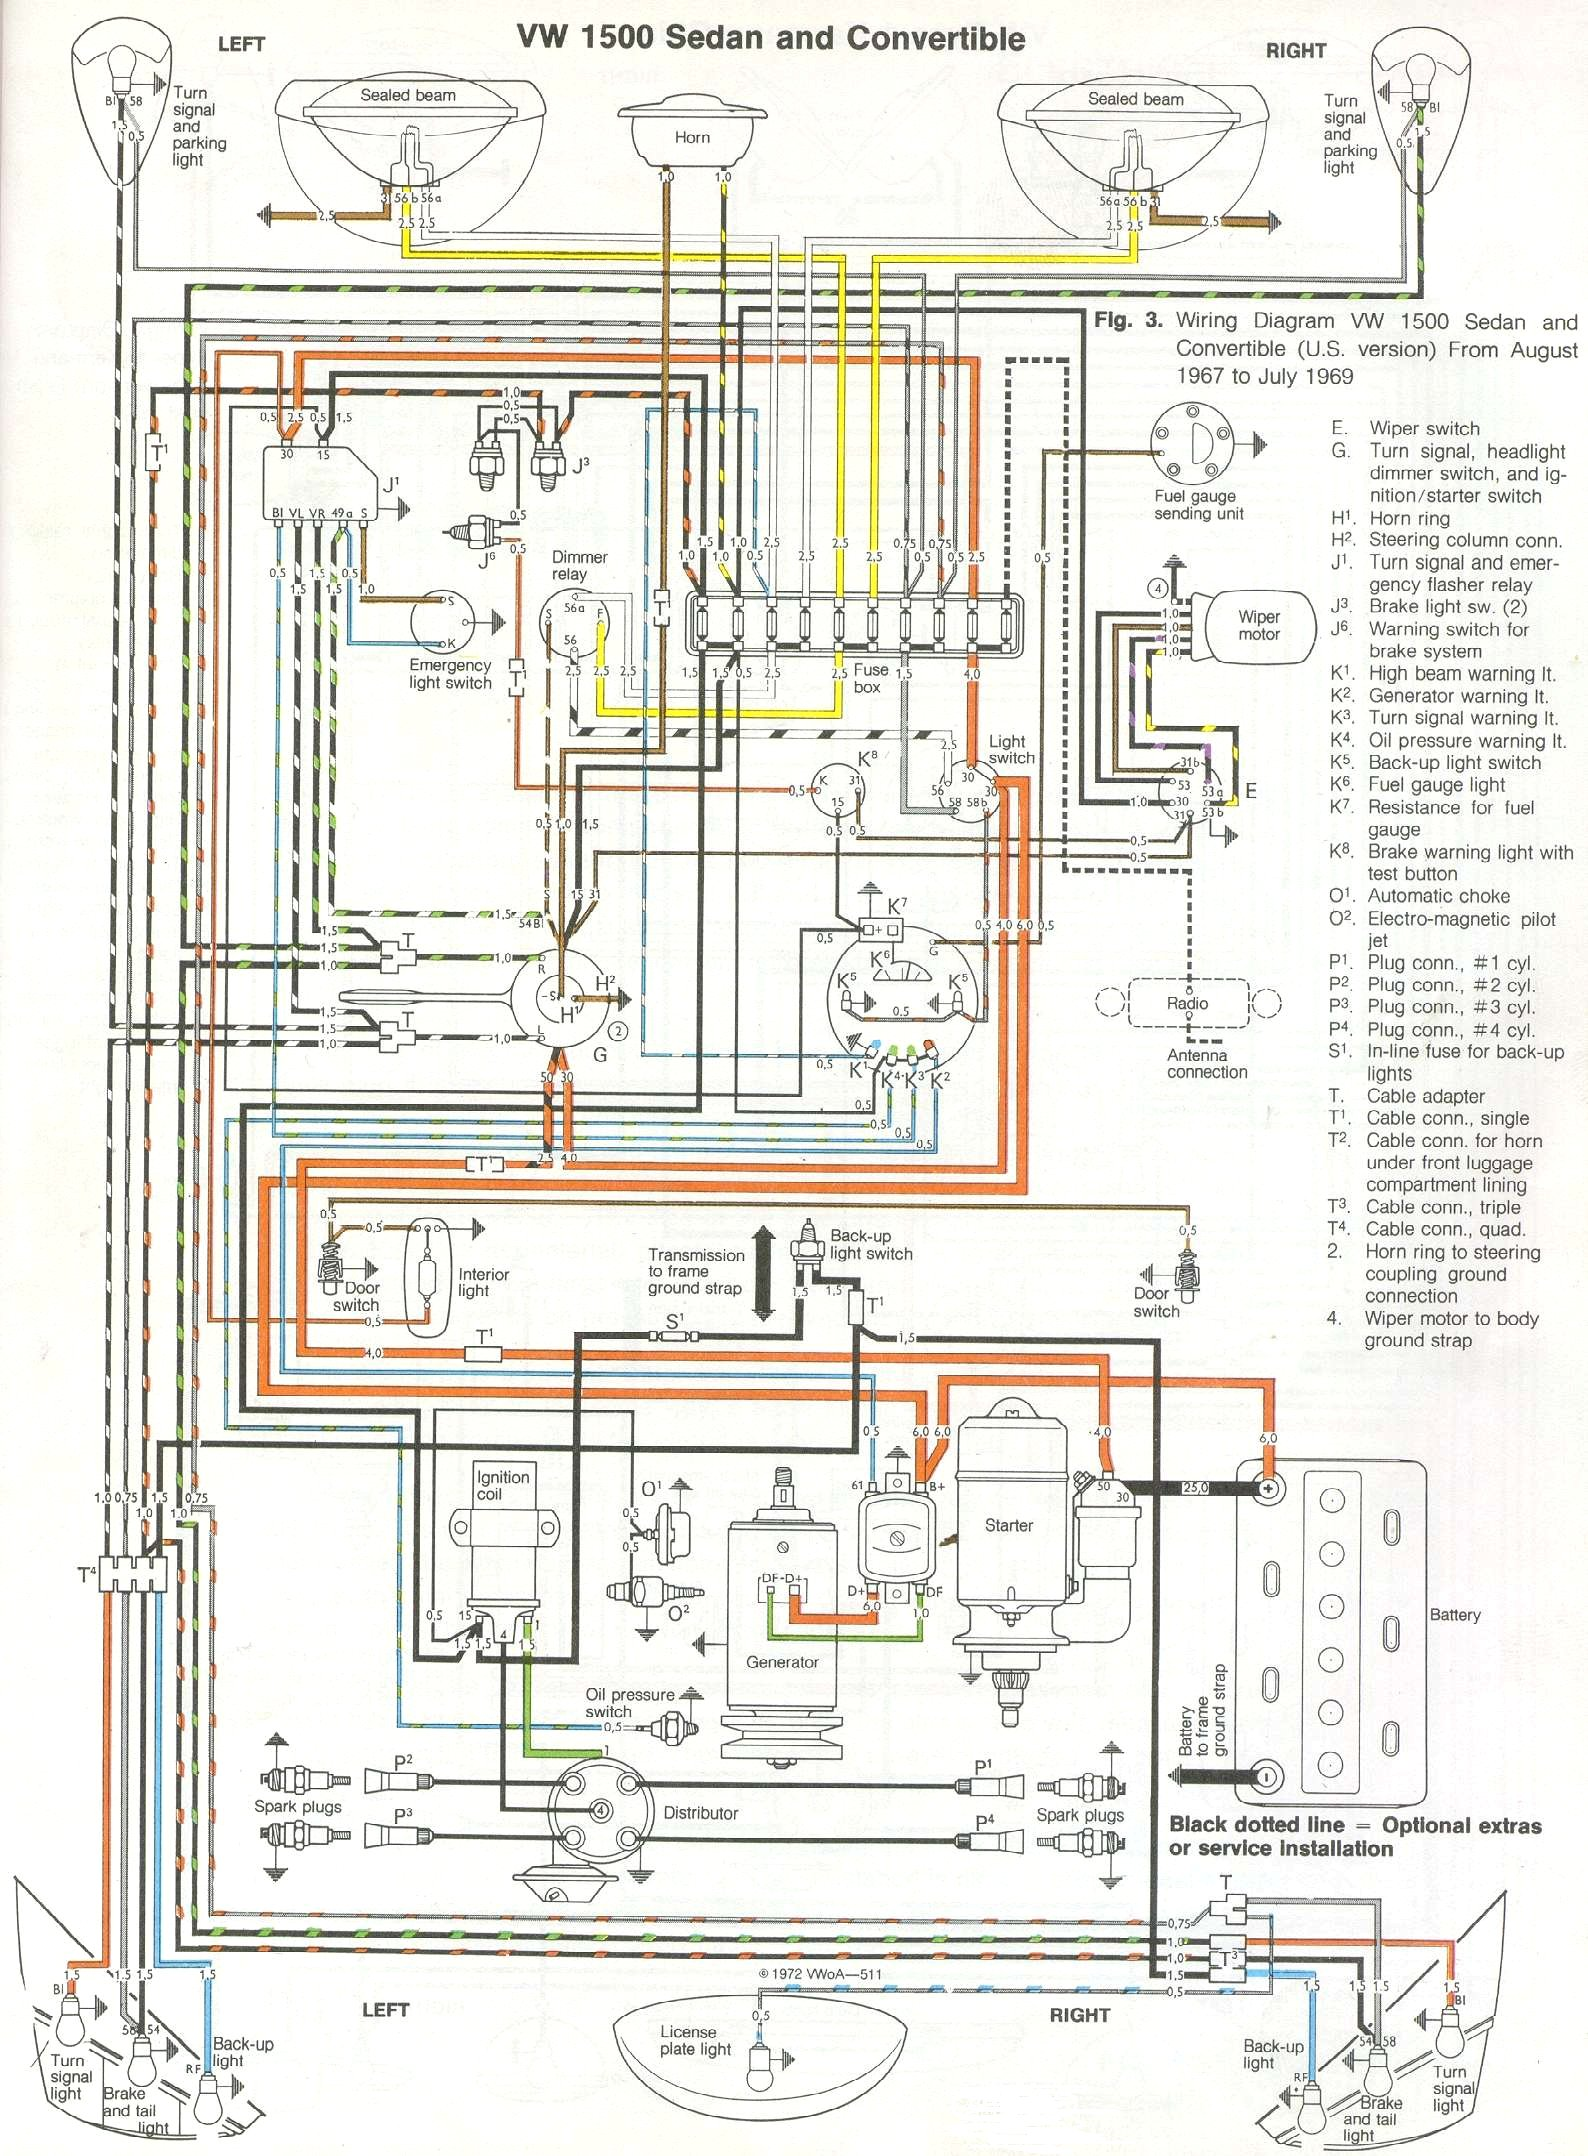 1968 vw bug wiring diagram enthusiast wiring diagrams u2022 rh bwpartnersautos com